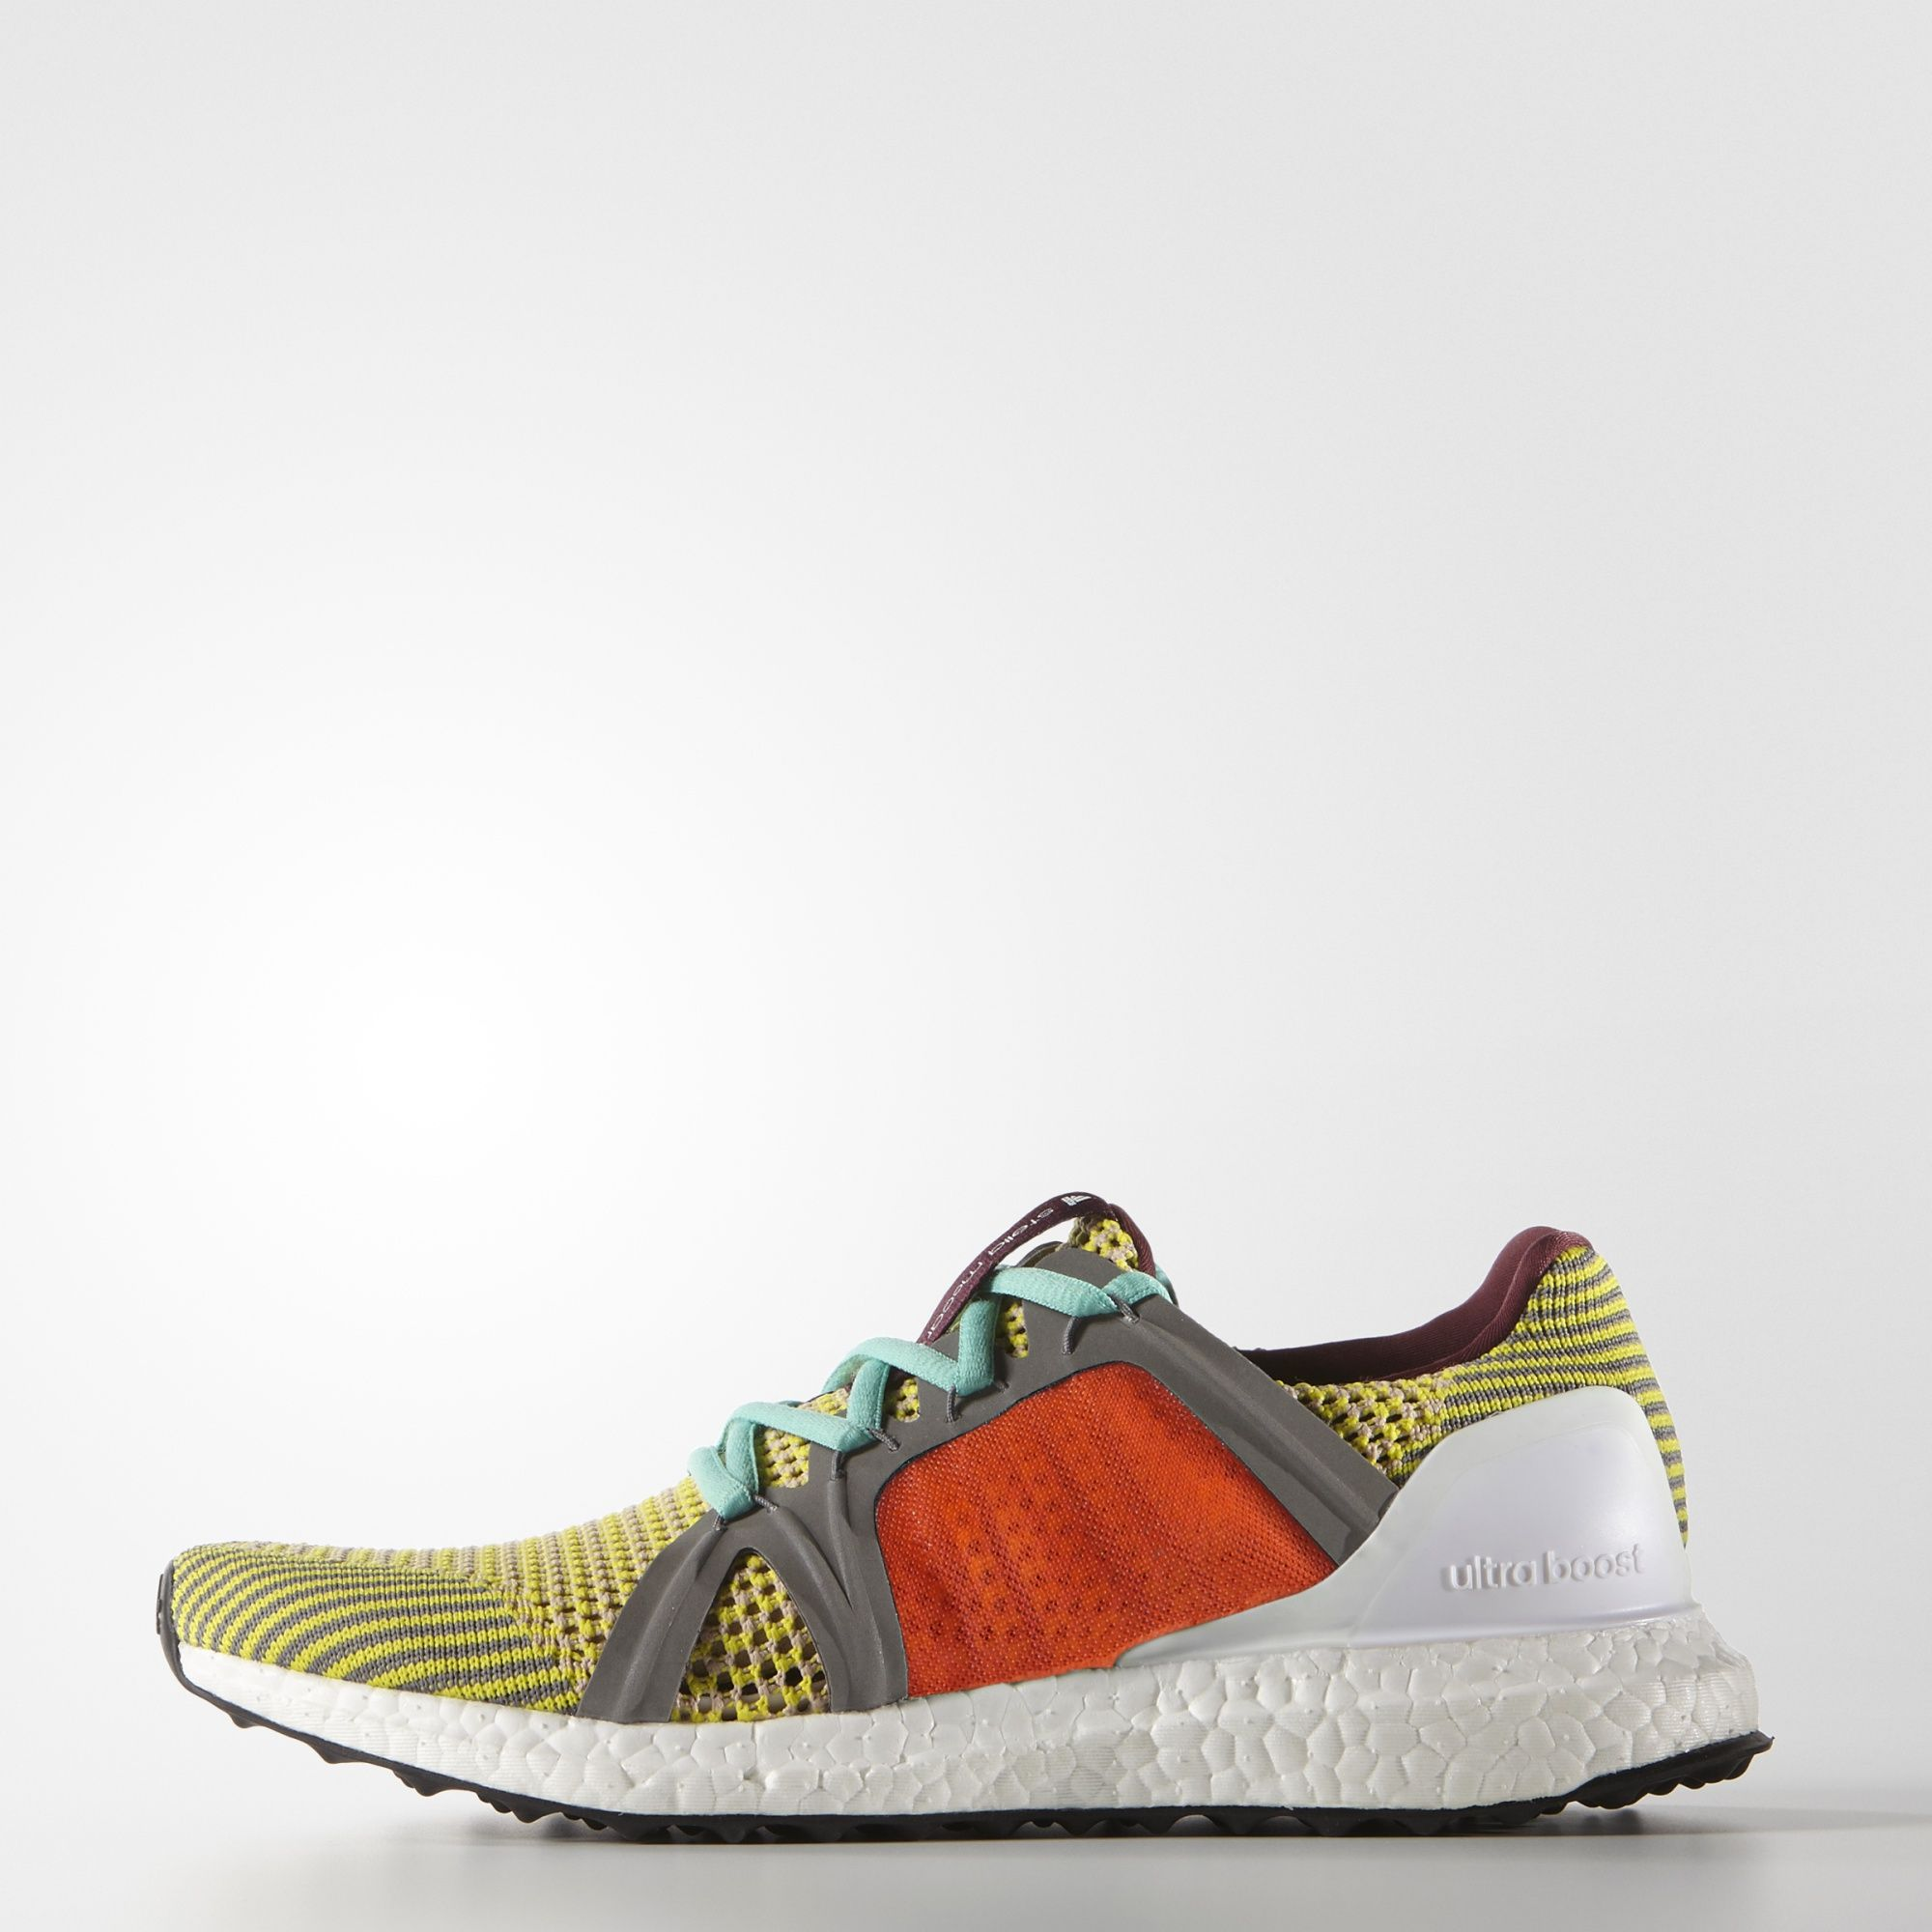 Designed to cruise through a 10K, these adidas by Stella McCartney Ultra  Boost Shoes come